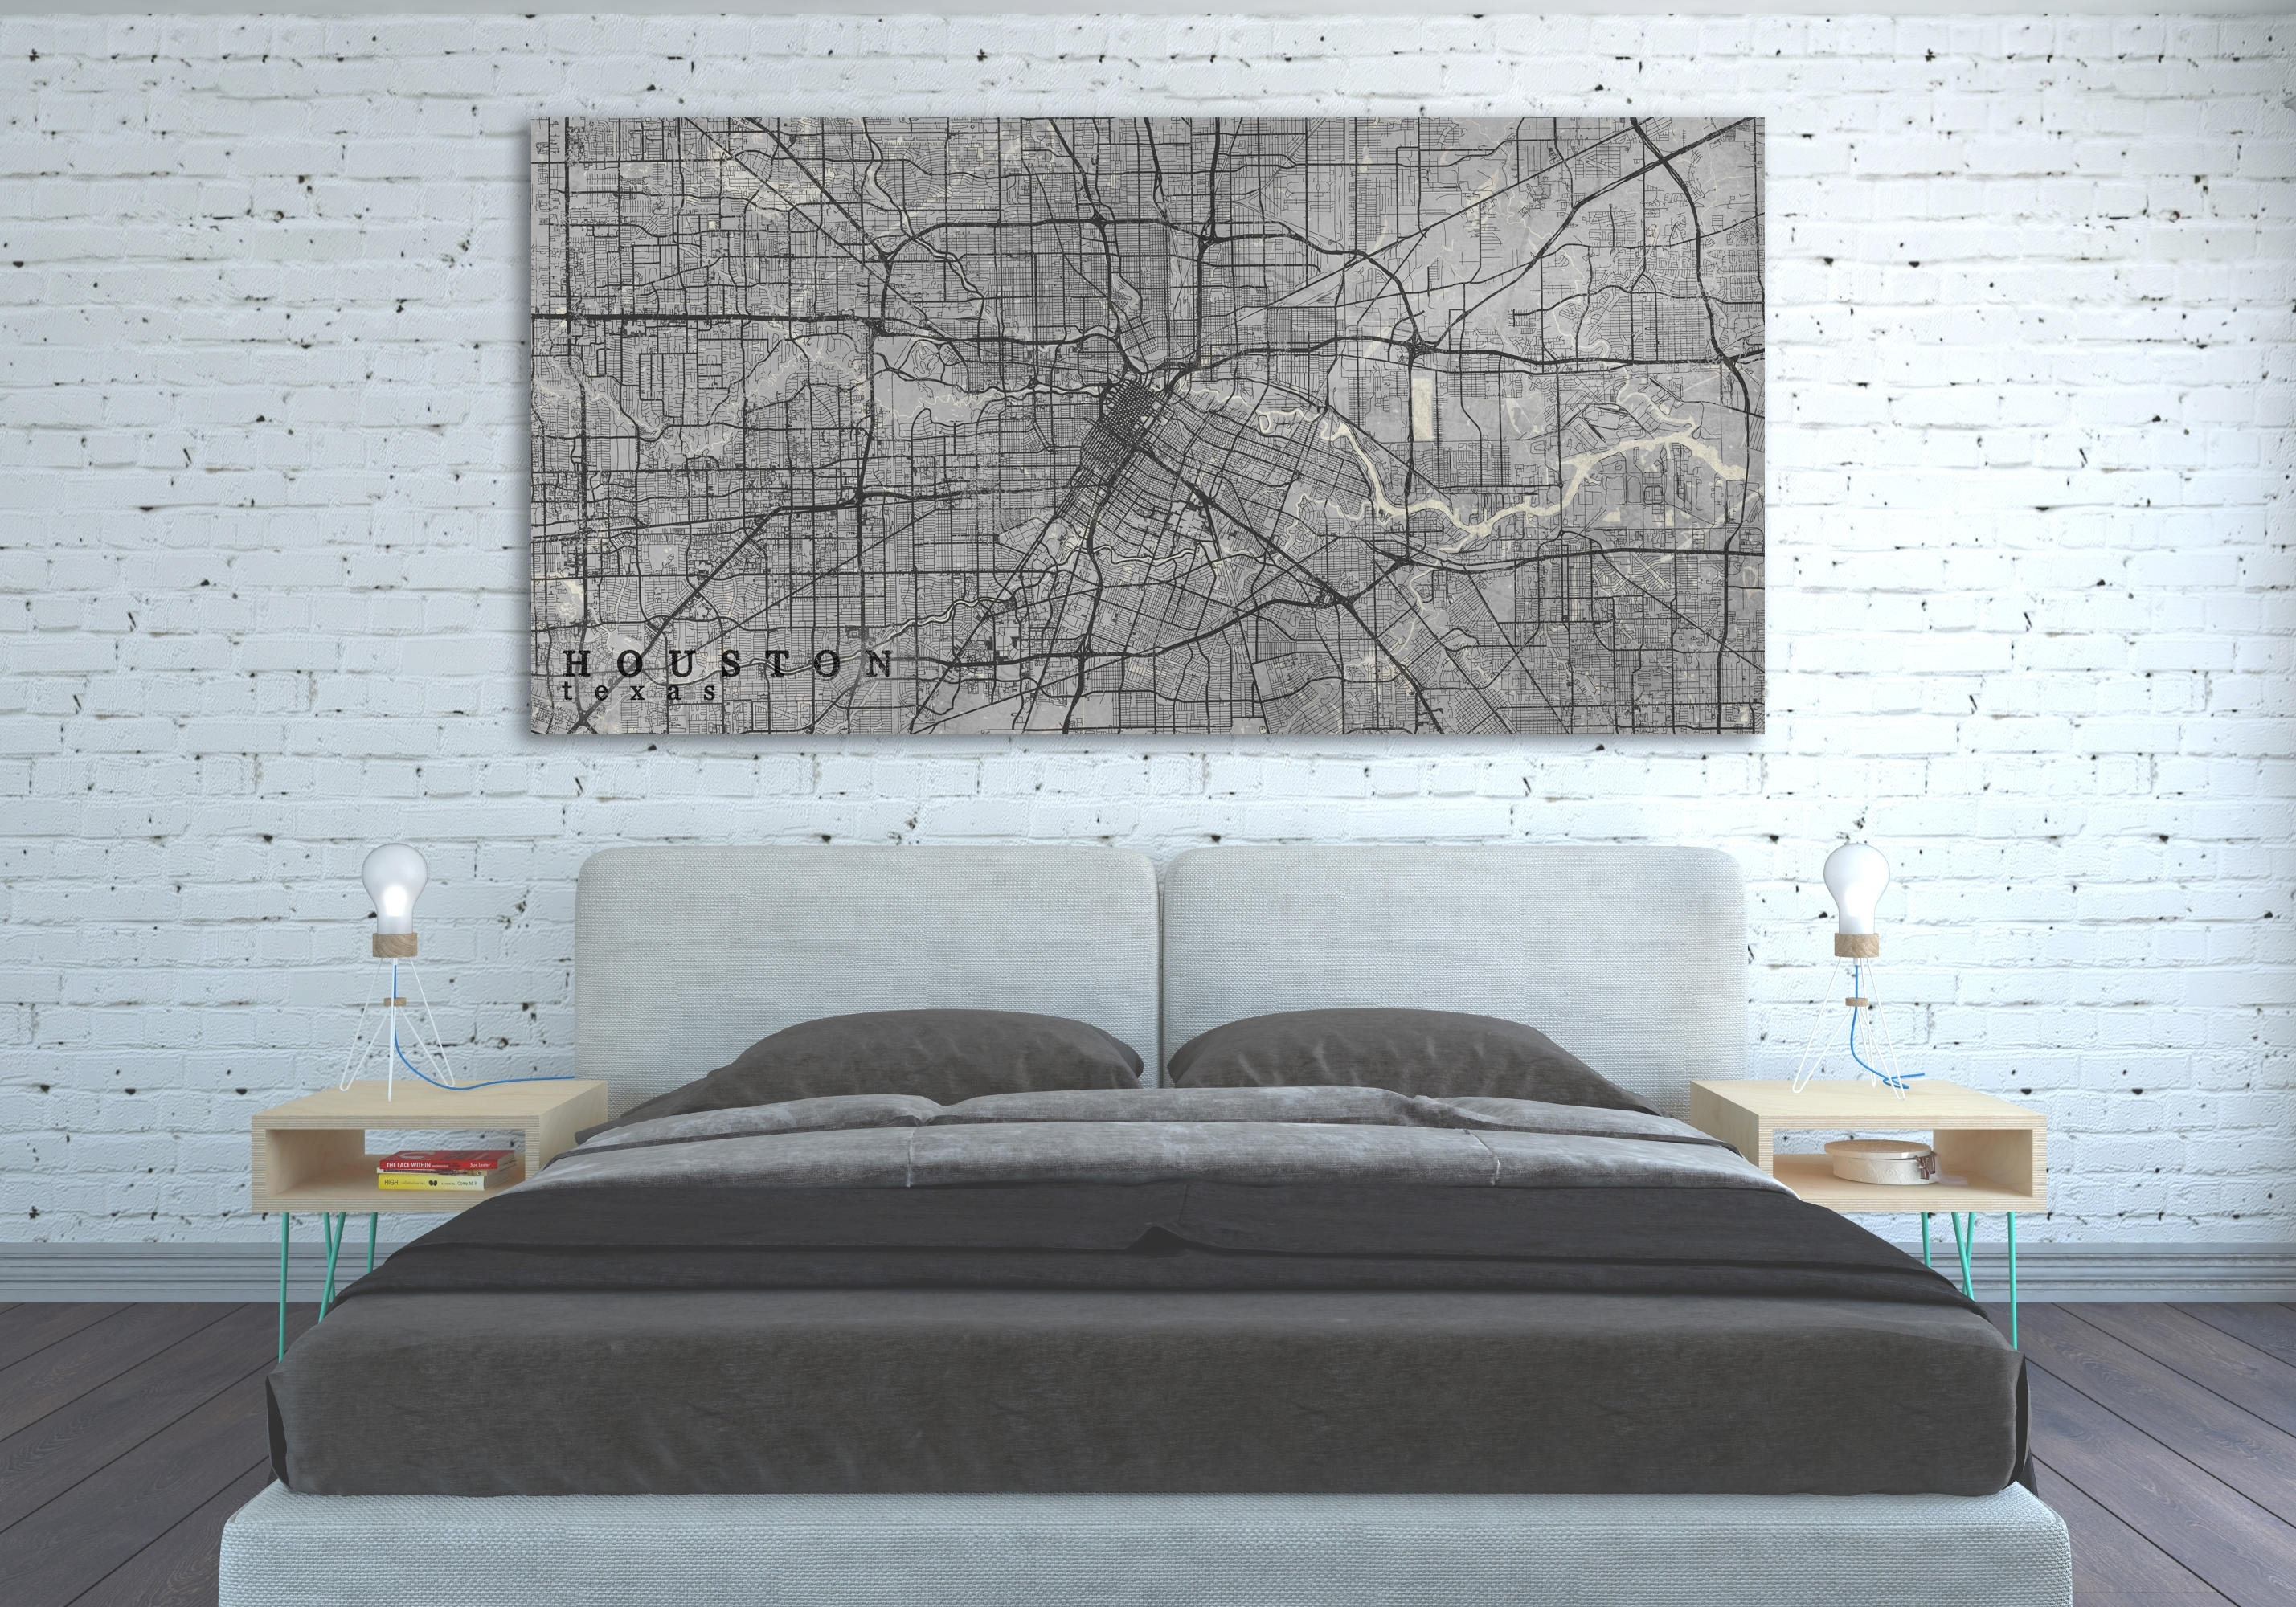 Houston Tx Canvas Print Houston Texas Tx Vintage Map City Poster Intended For 2017 Houston Canvas Wall Art (View 11 of 15)